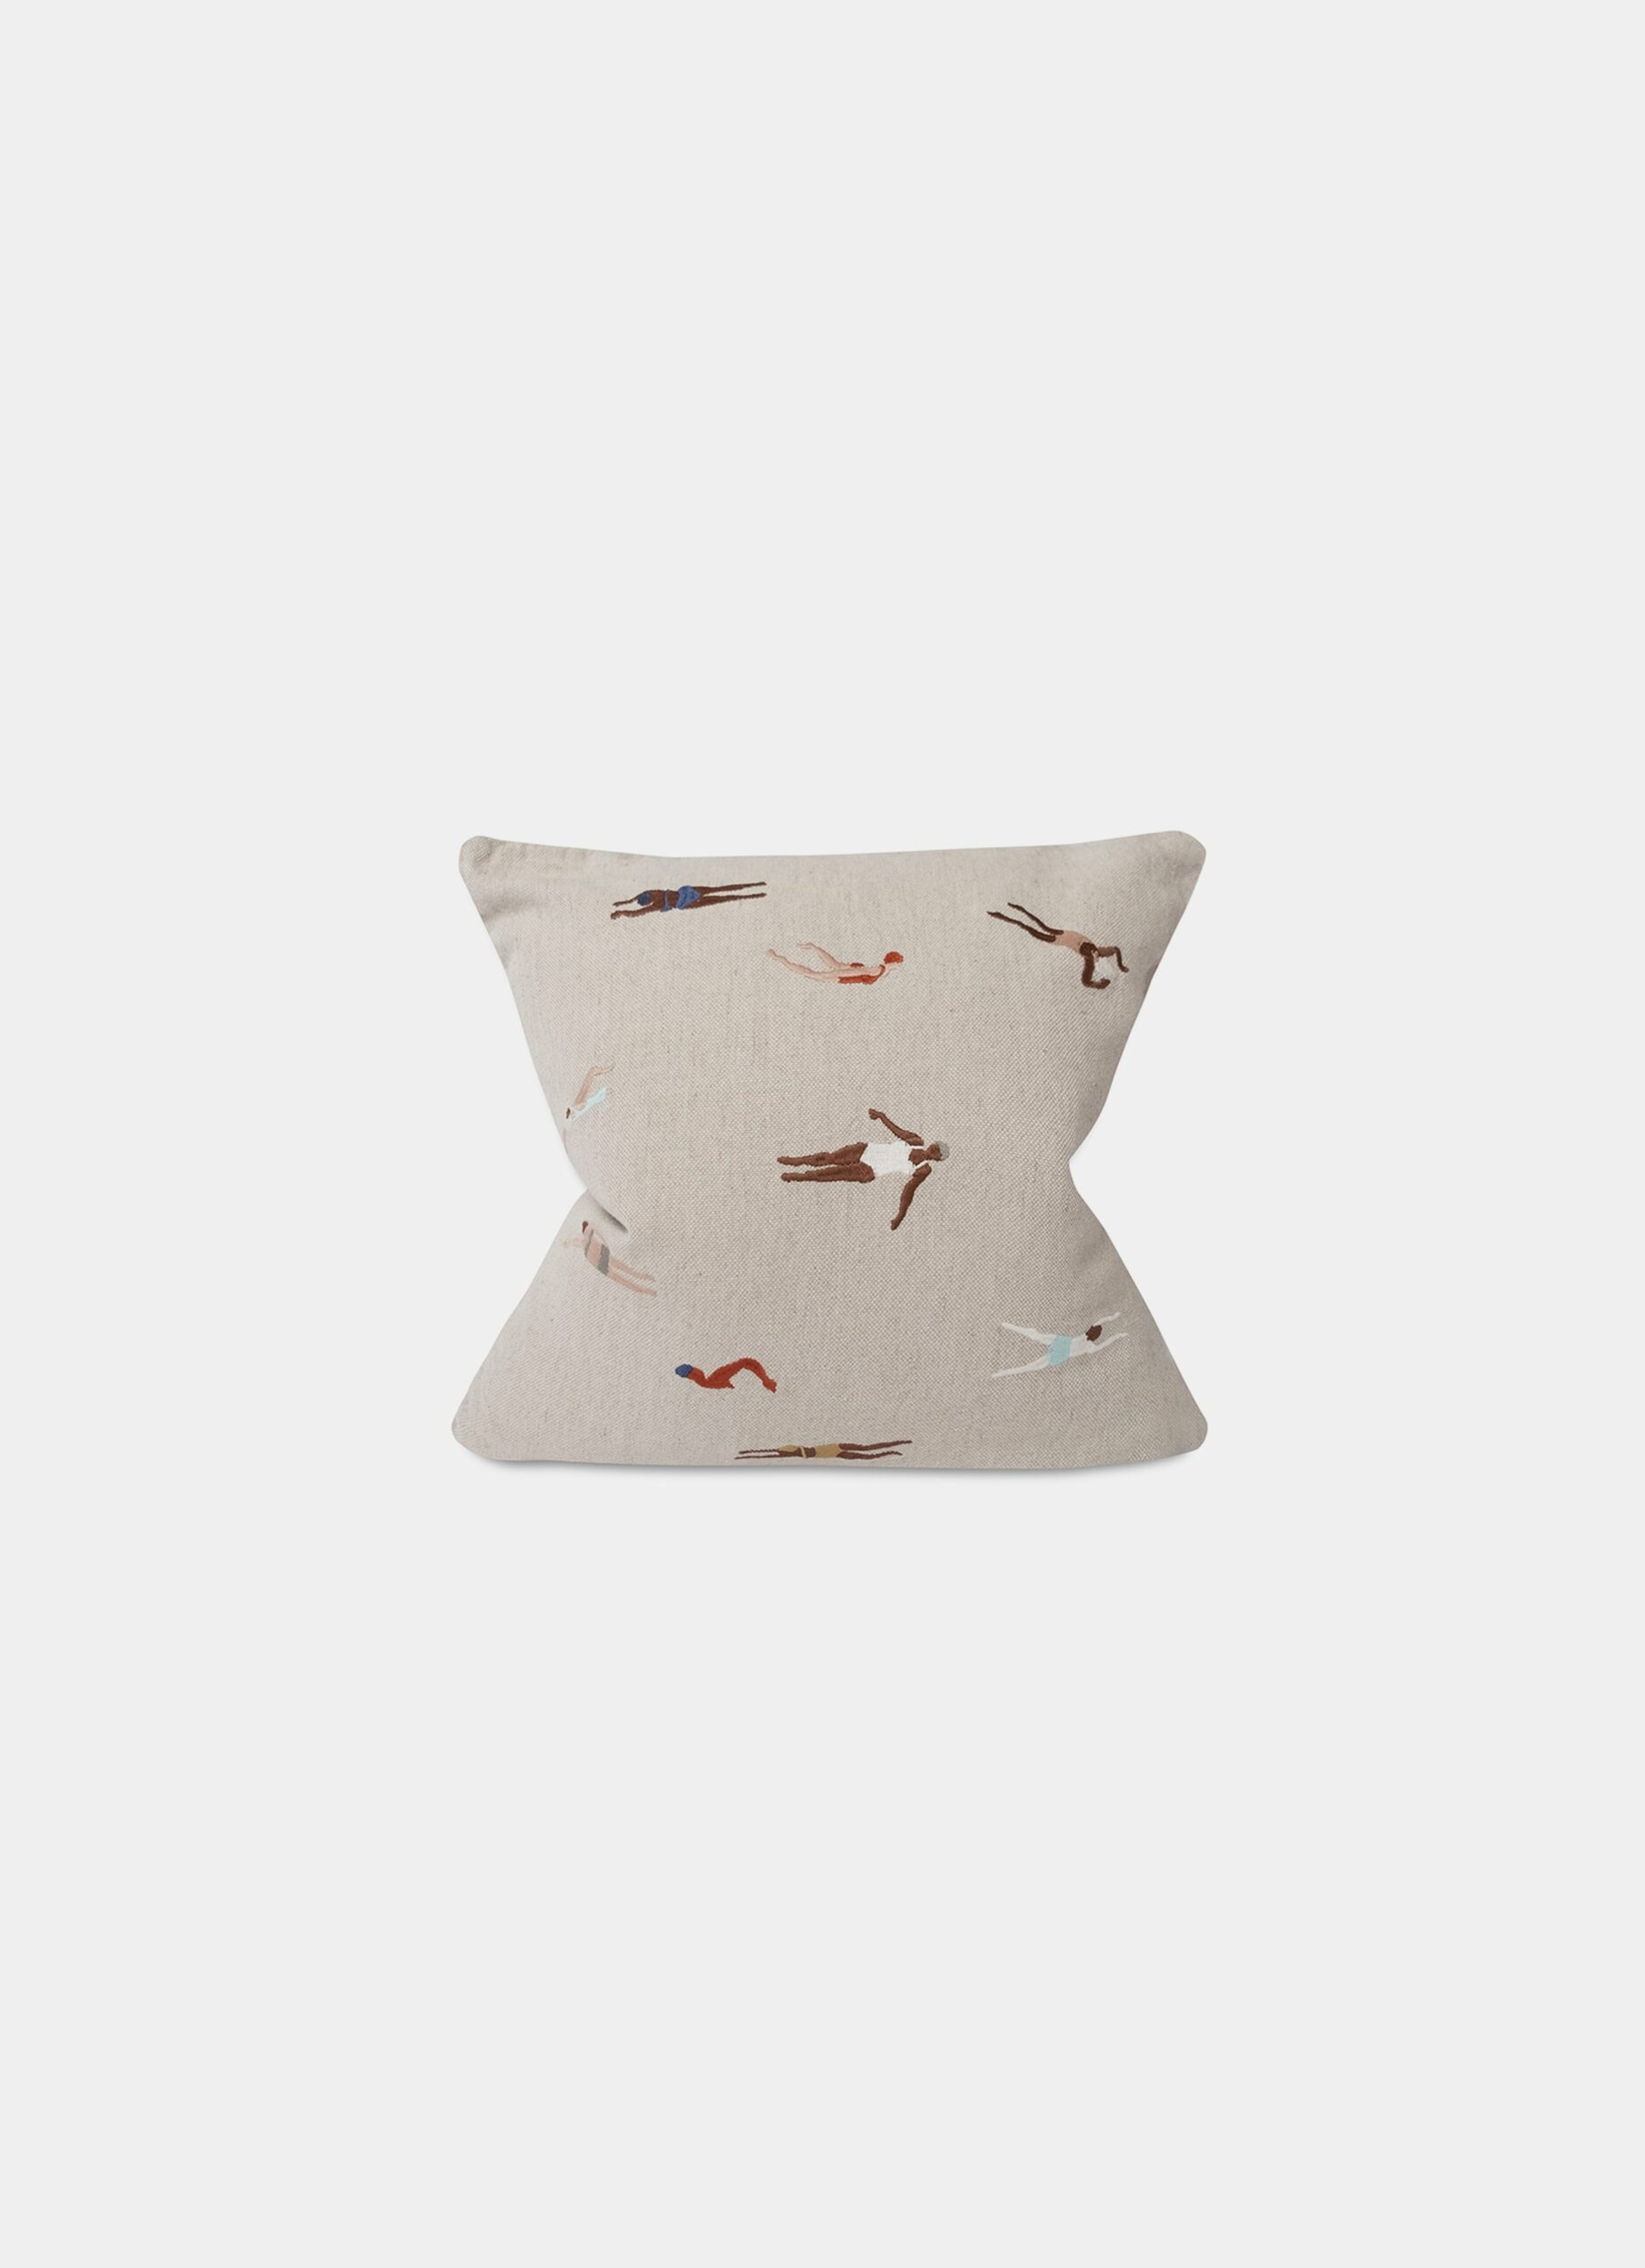 Fine Little Day - Swimmers - Embroidered Cushion - Linen and Cotton